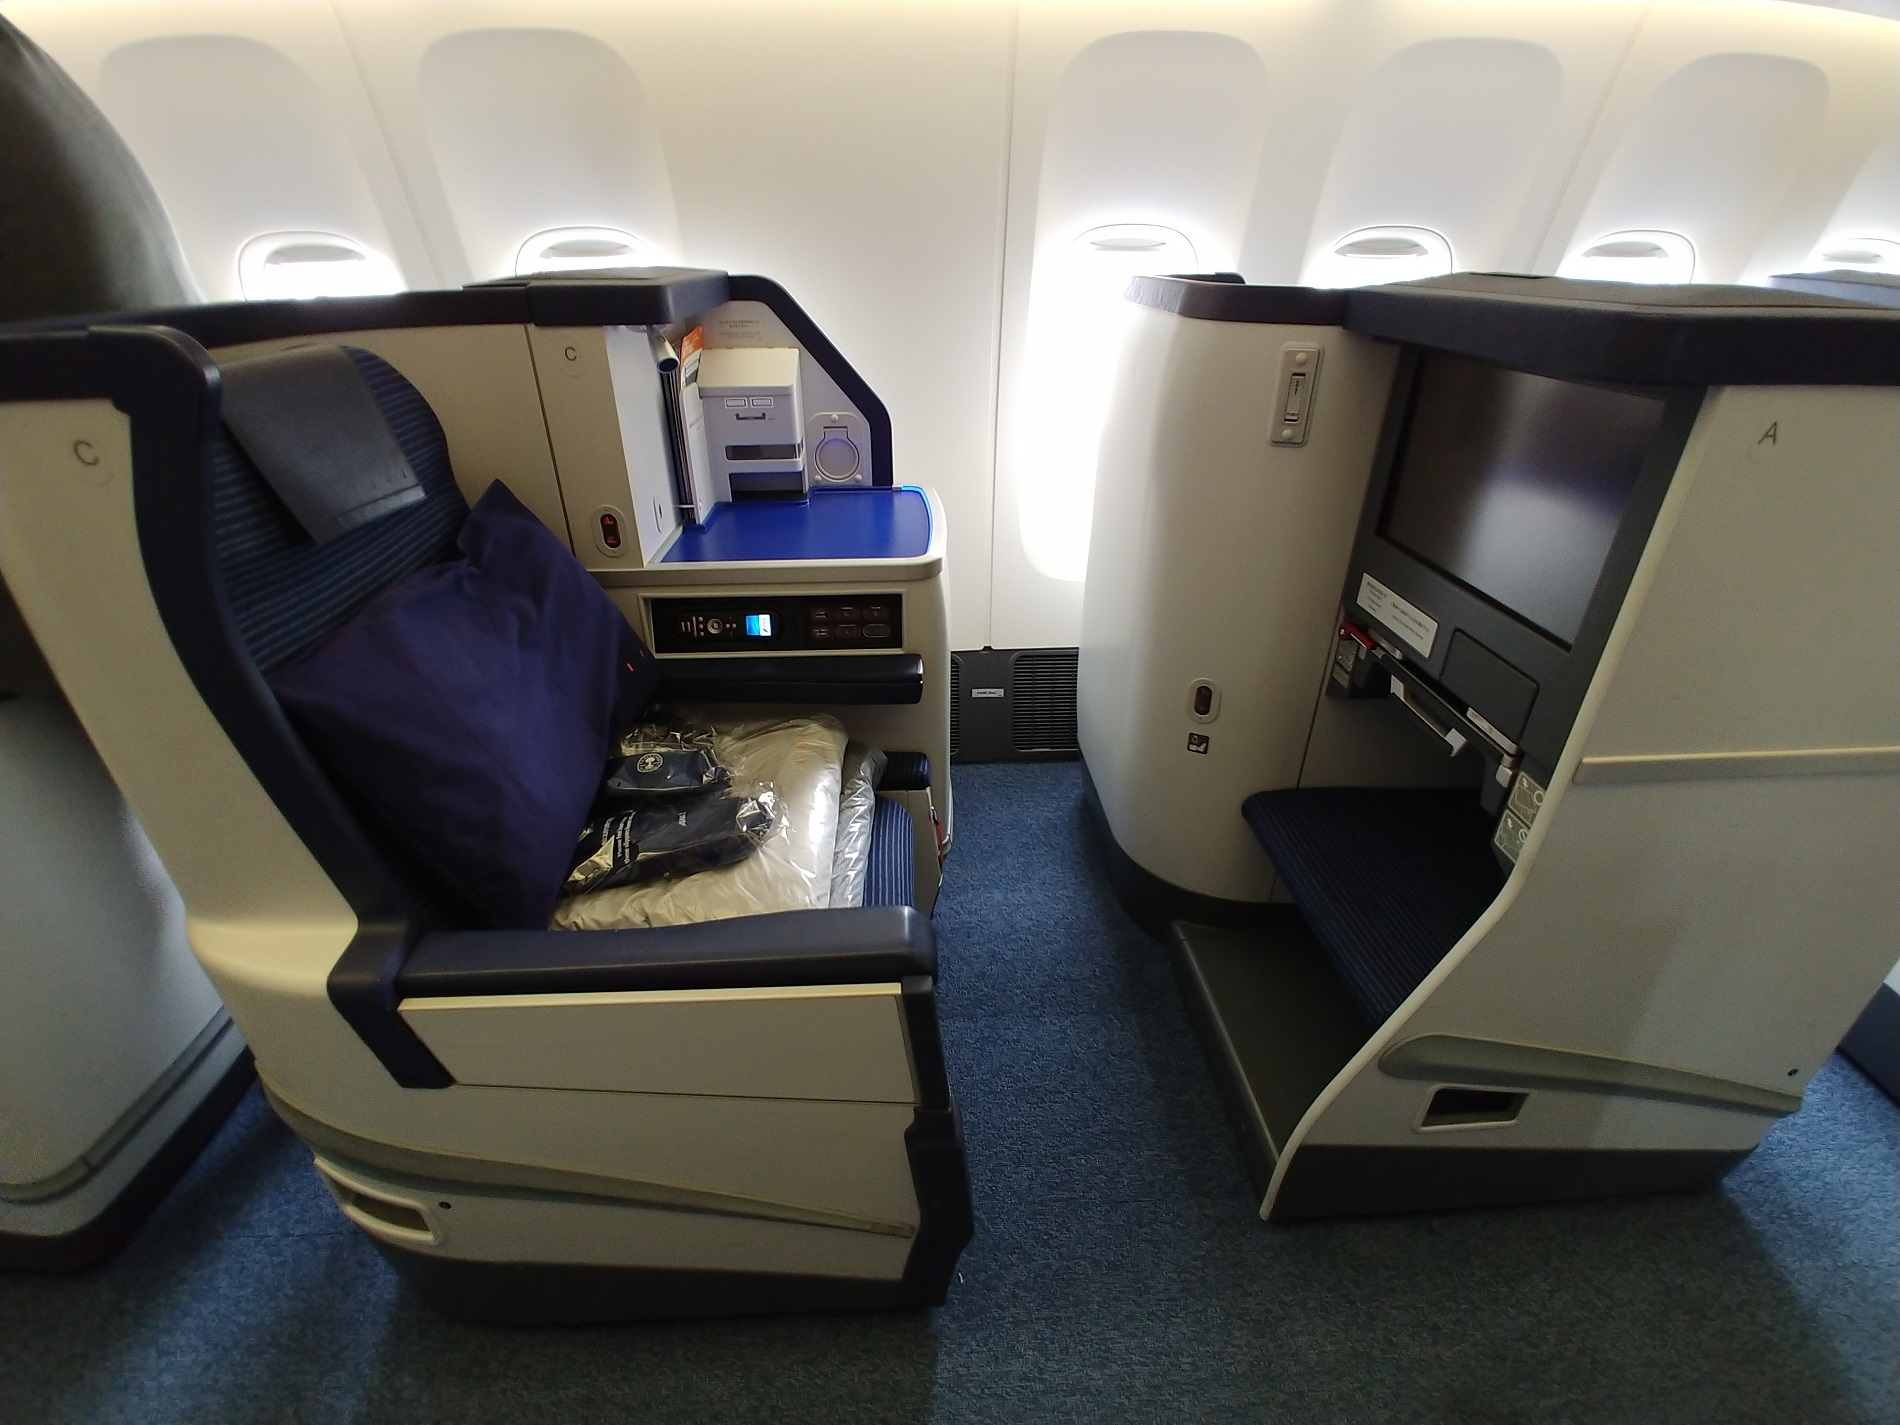 ANA business class, from just 75K round trip.